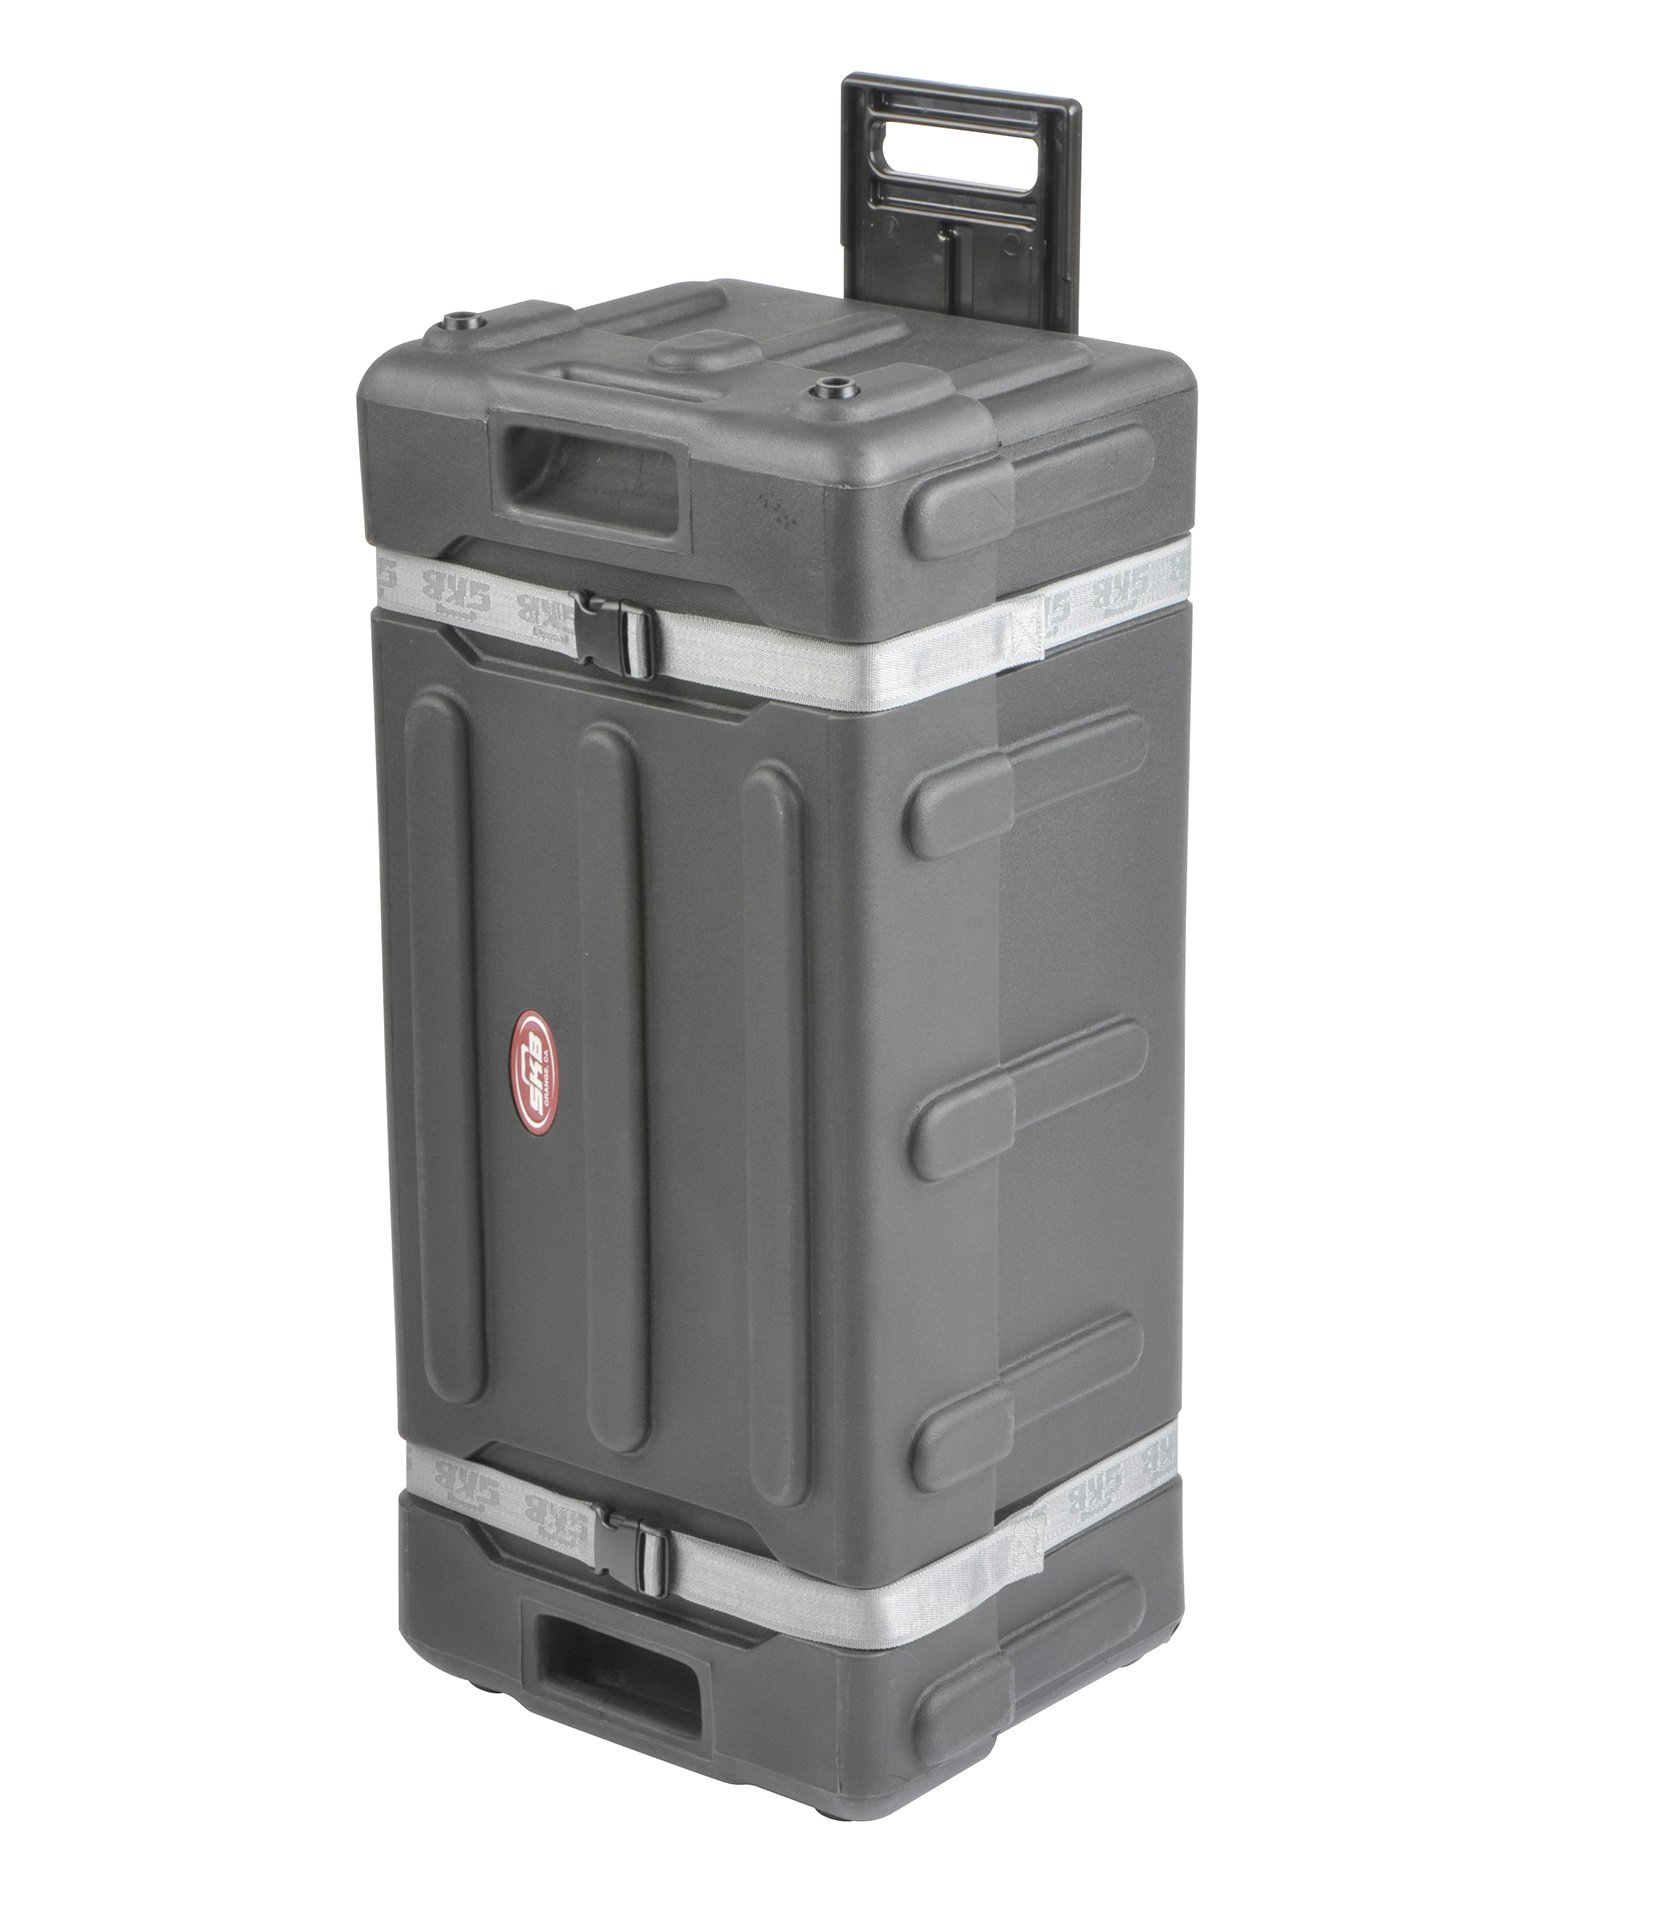 buy skb 1skb dh3315w mid sized drum hardware case with han